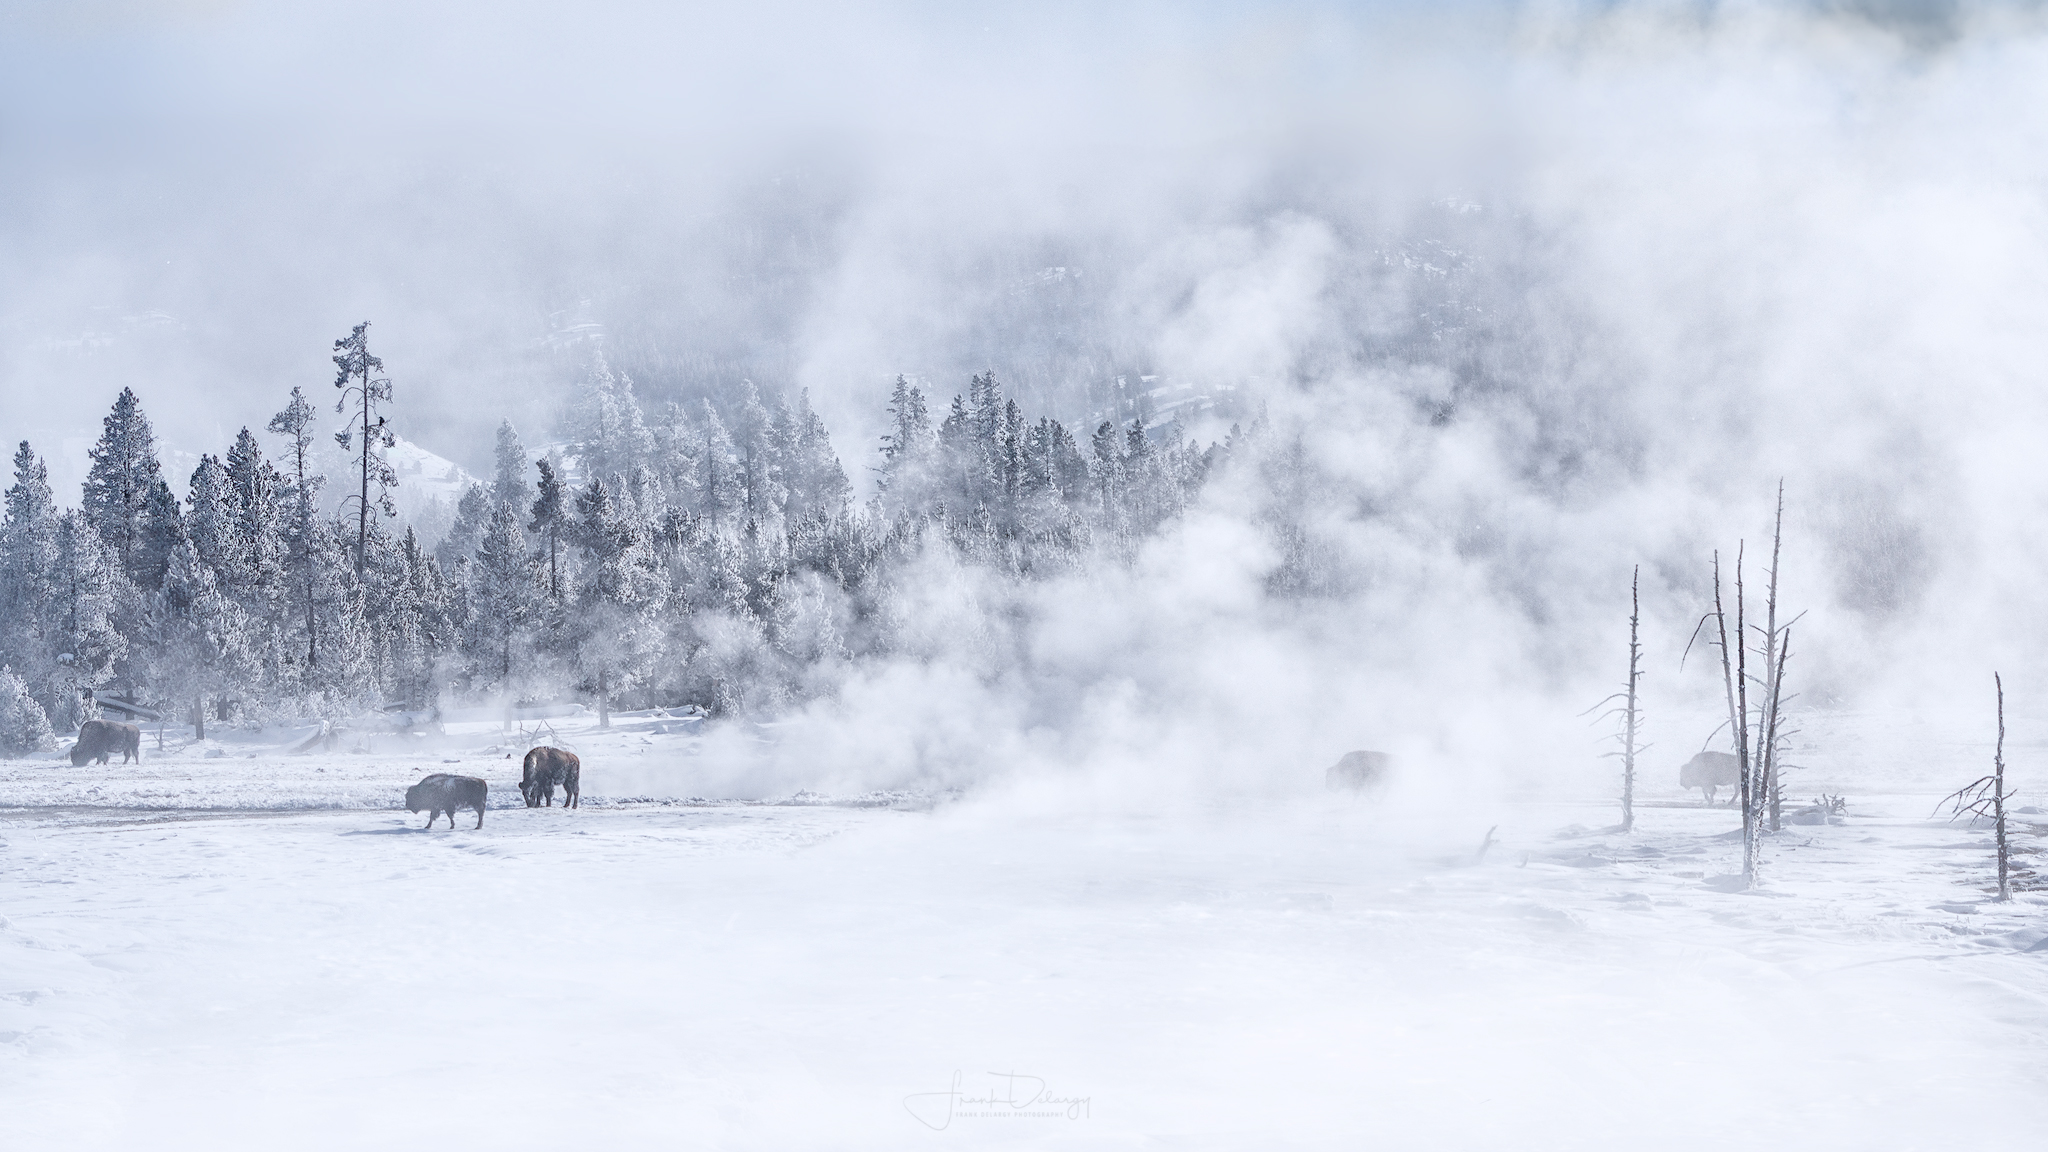 Bison walking through the steam of the geysers. An iconic image of Yellowstone.